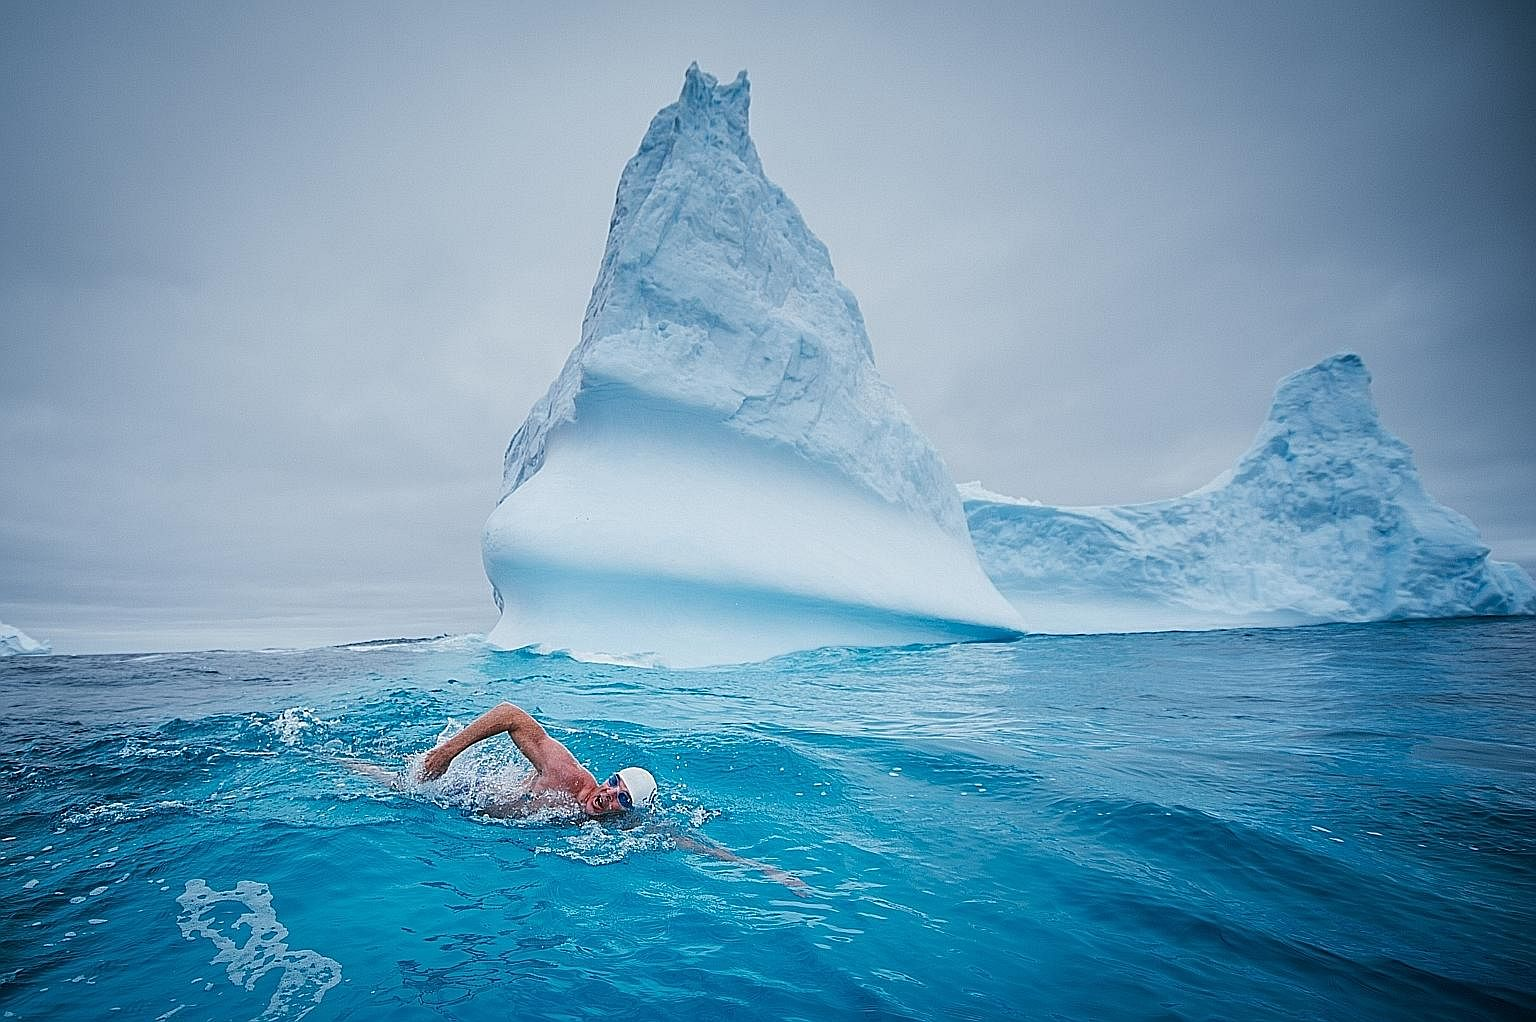 Mr Pugh swimming in the Antarctica. Through his swims, he hopes to secure more marine protection for the vulnerable seas in the Antarctic area, which collectively spans about 7 million sq km, roughly the size of Australia.